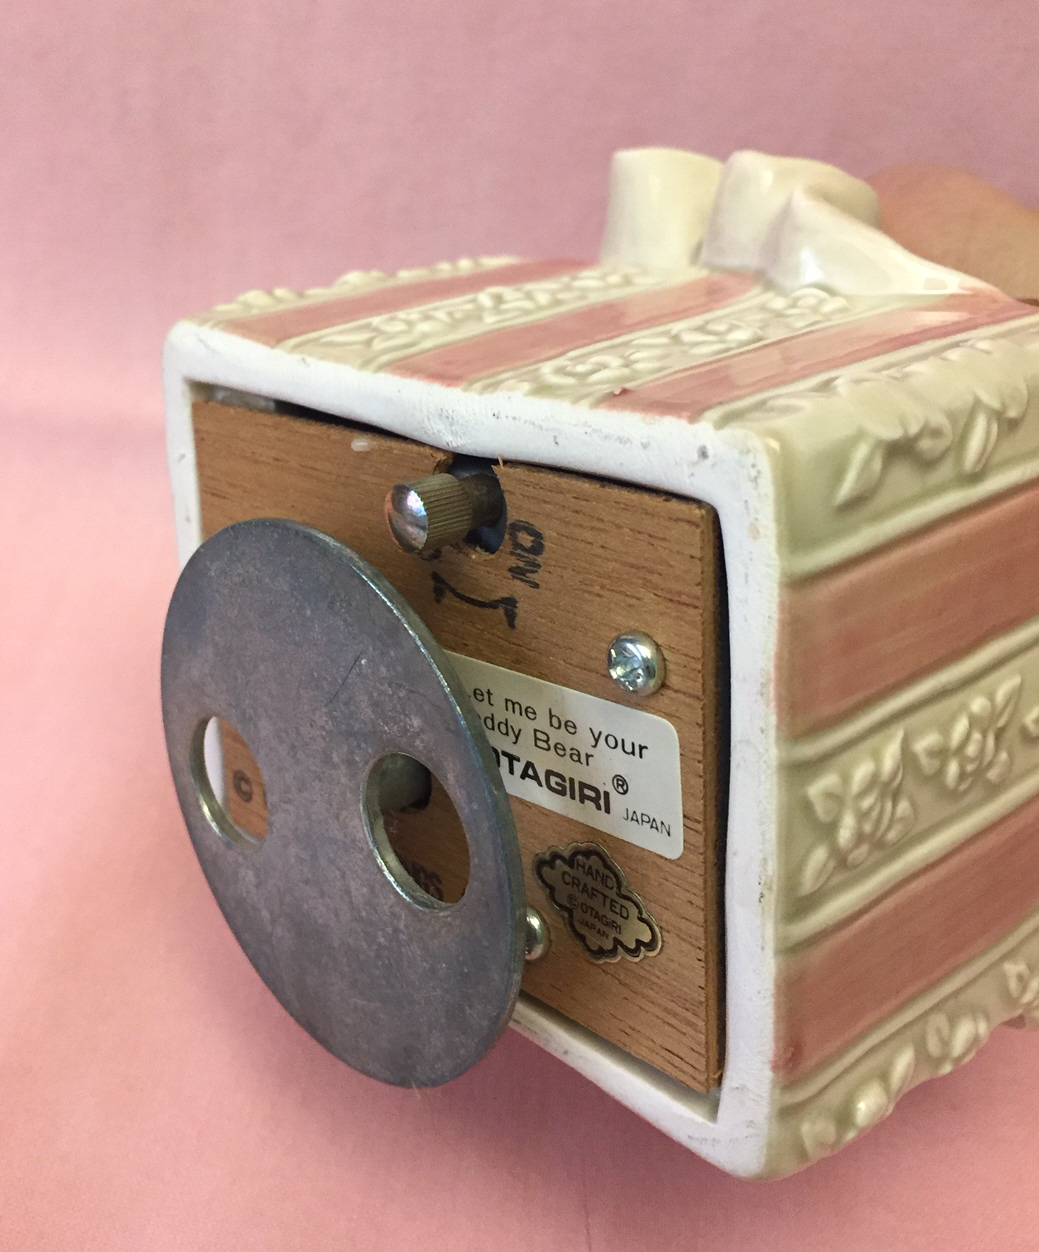 Vintage Otagiri Japan music box Let Me Be Your Teddy Bear wind-up ceramic pink